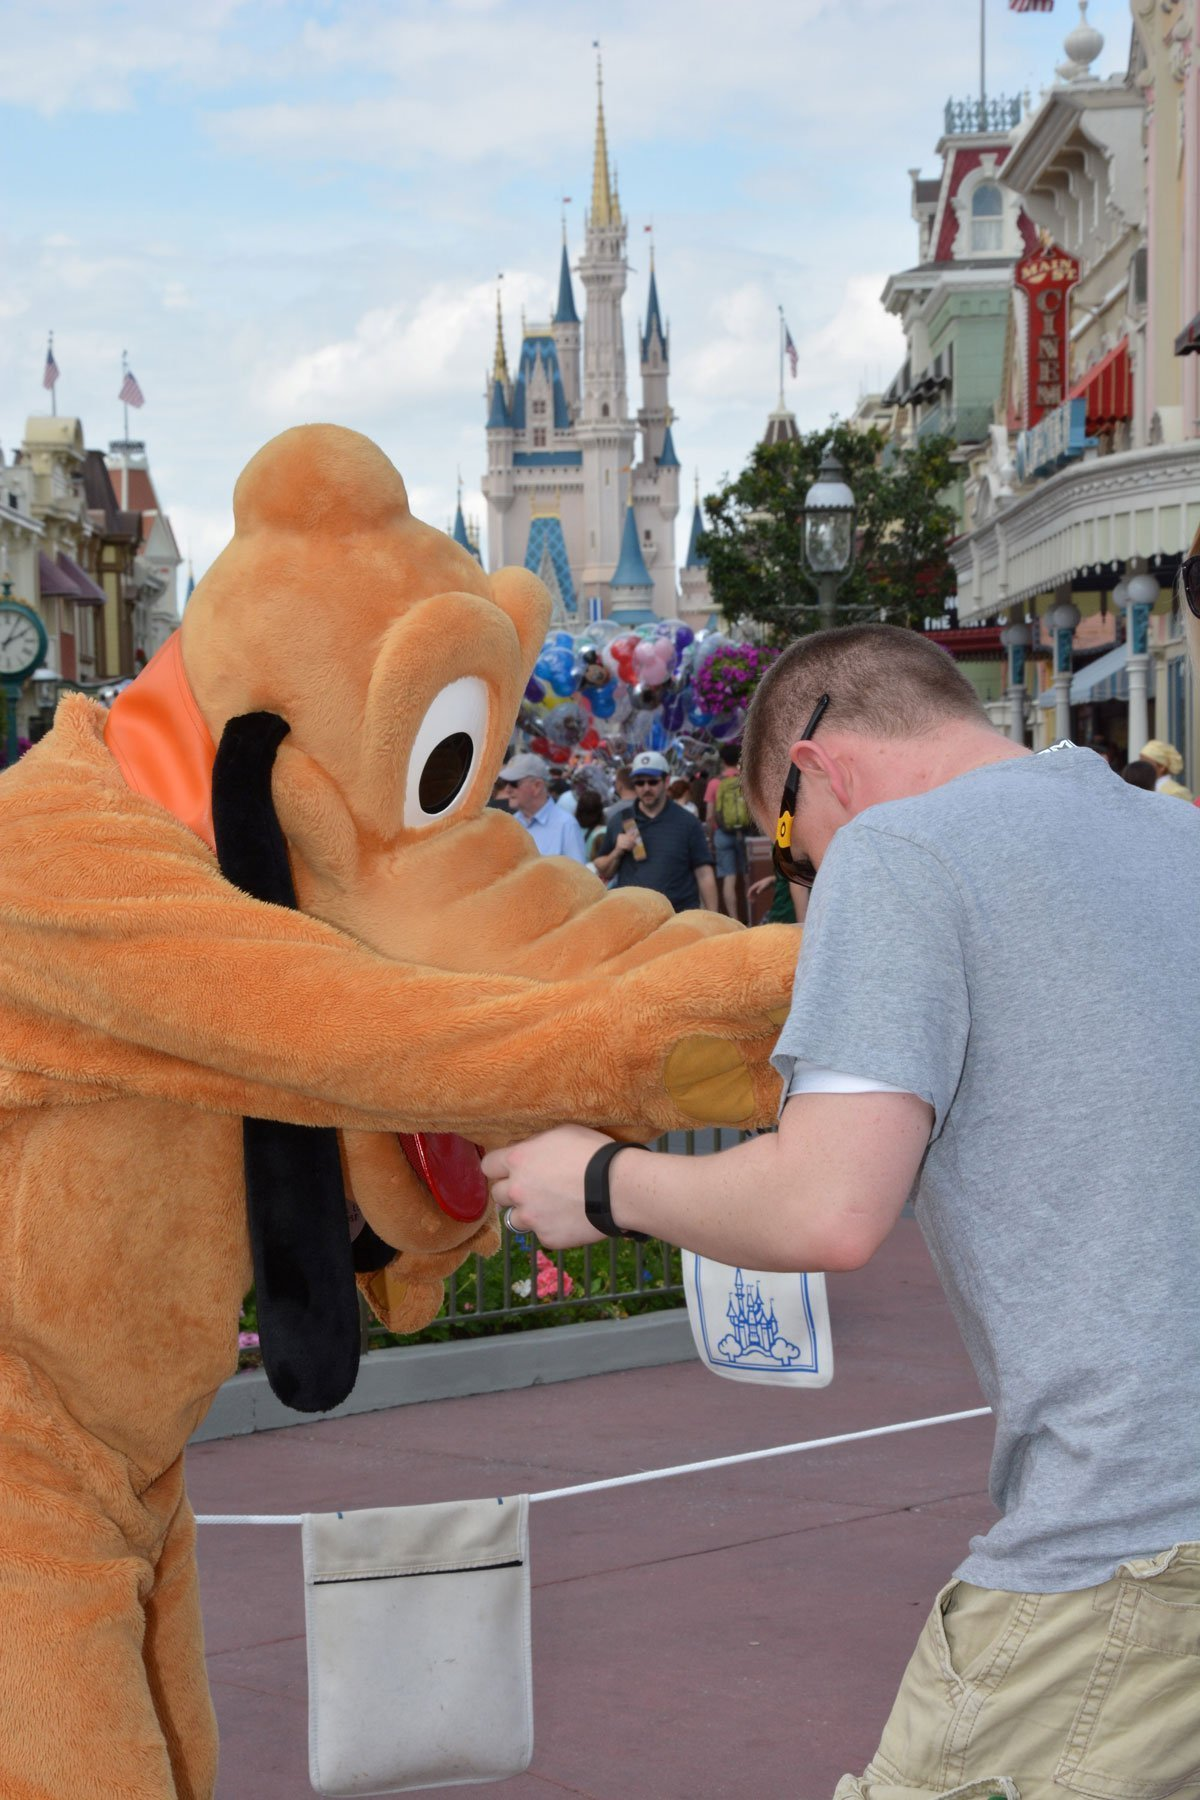 Kissing Pluto's nose during meet 'n' greet